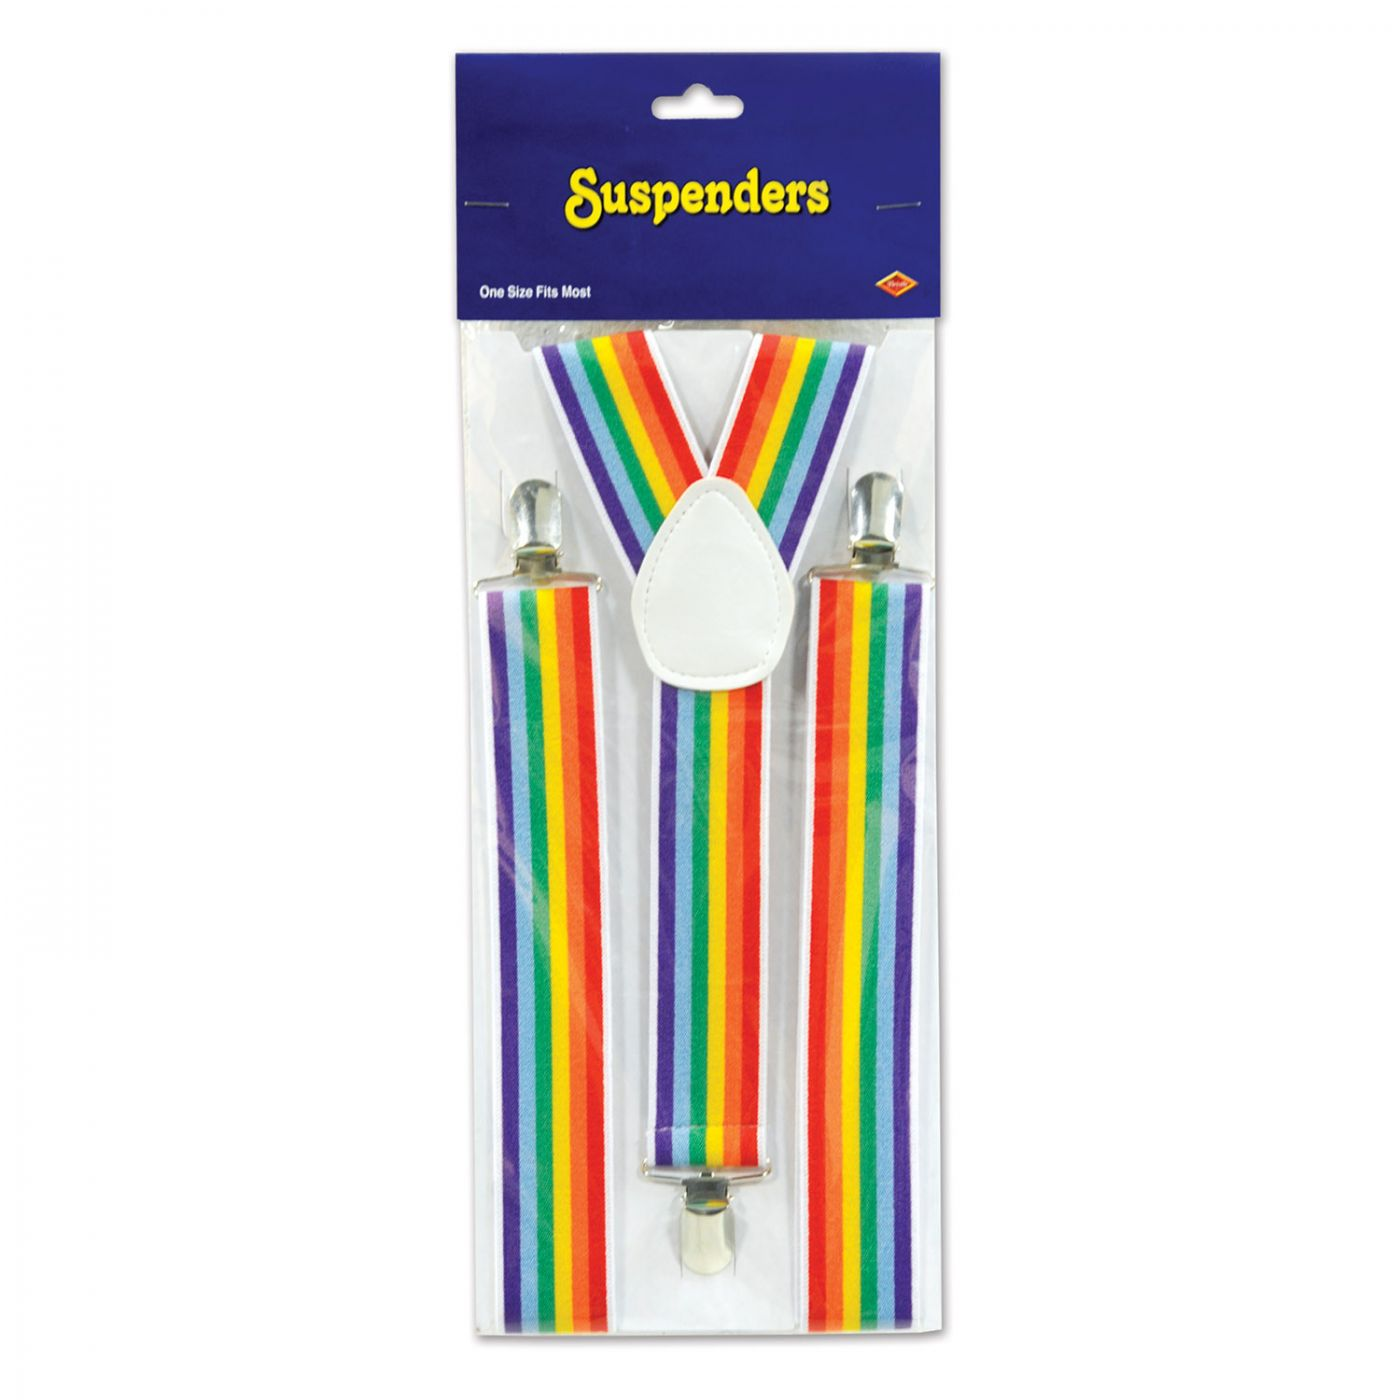 Rainbow Suspenders image